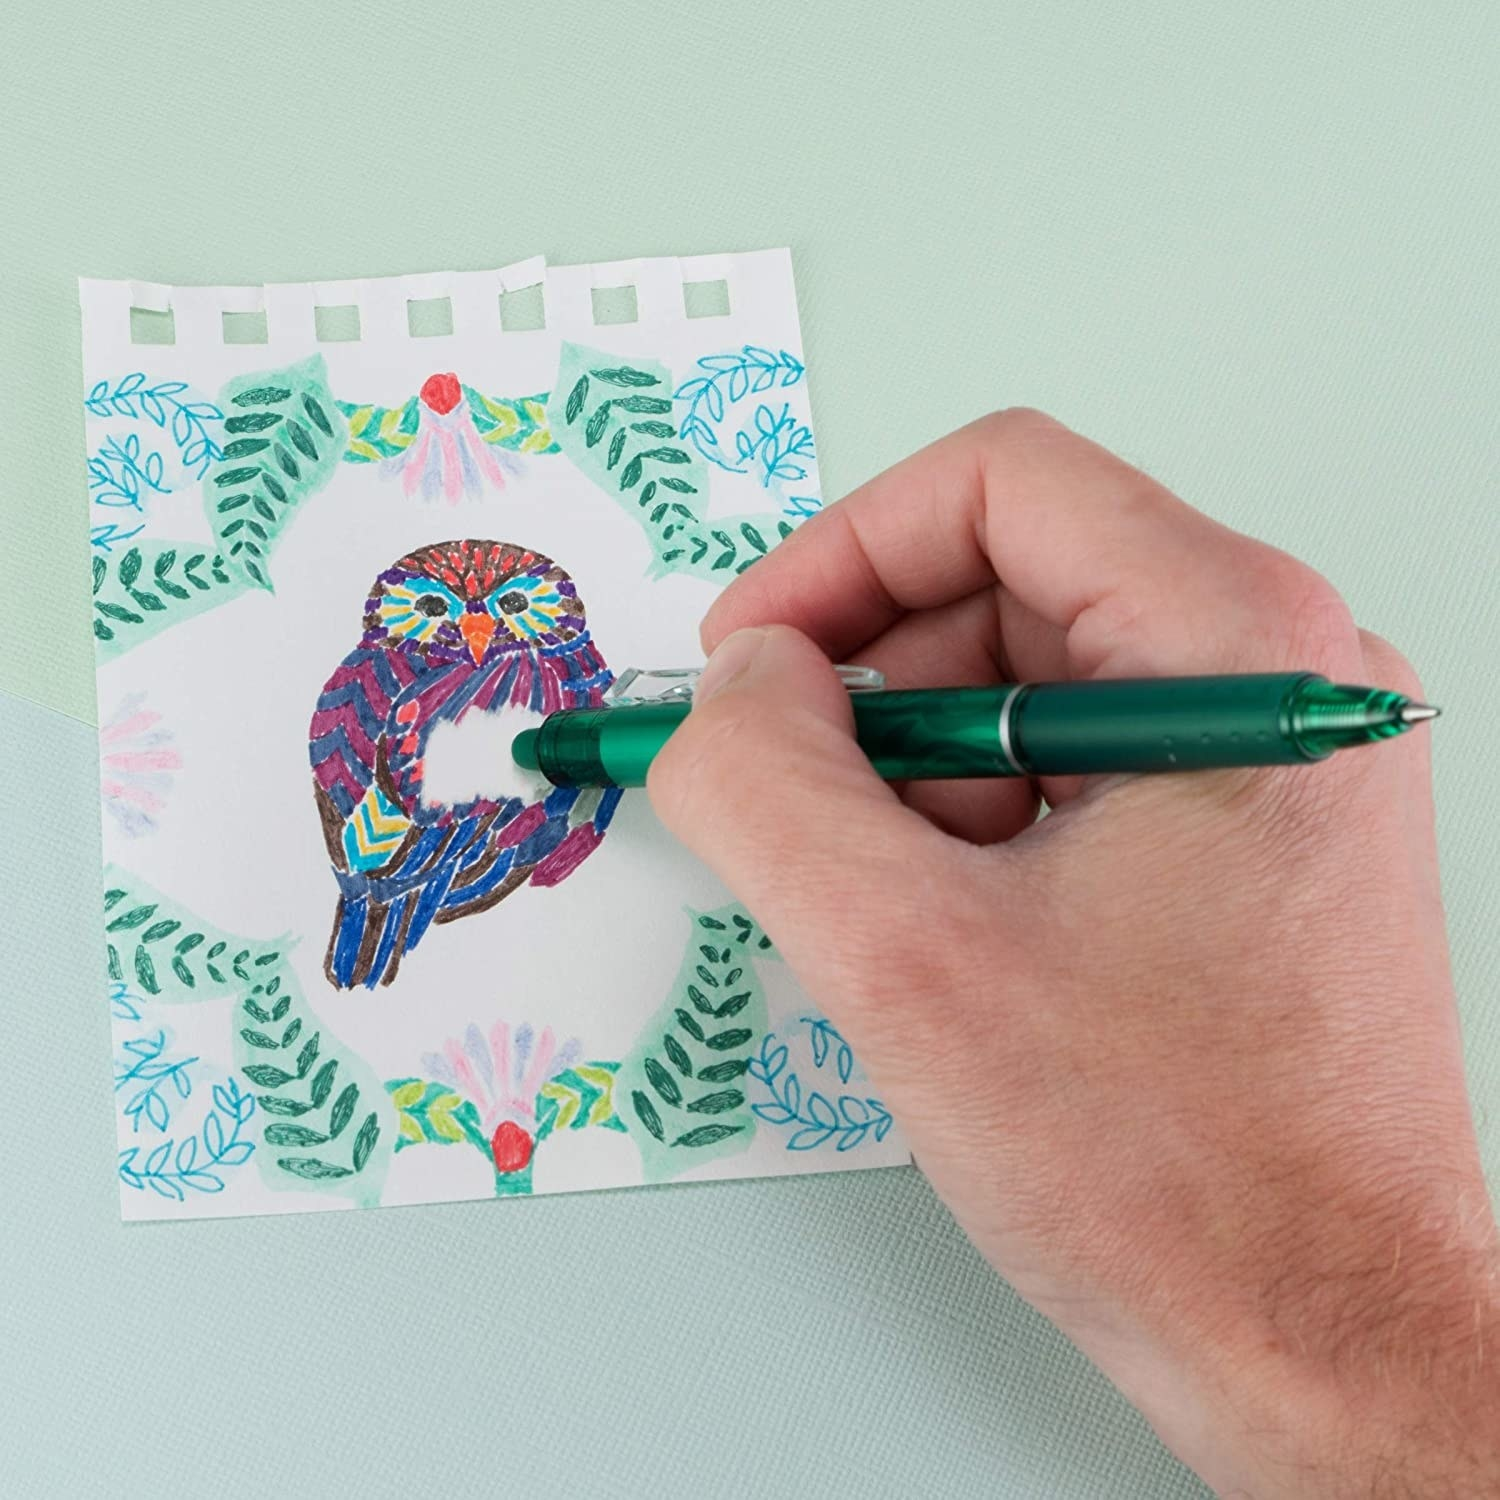 A person erasing part of an owl doodle